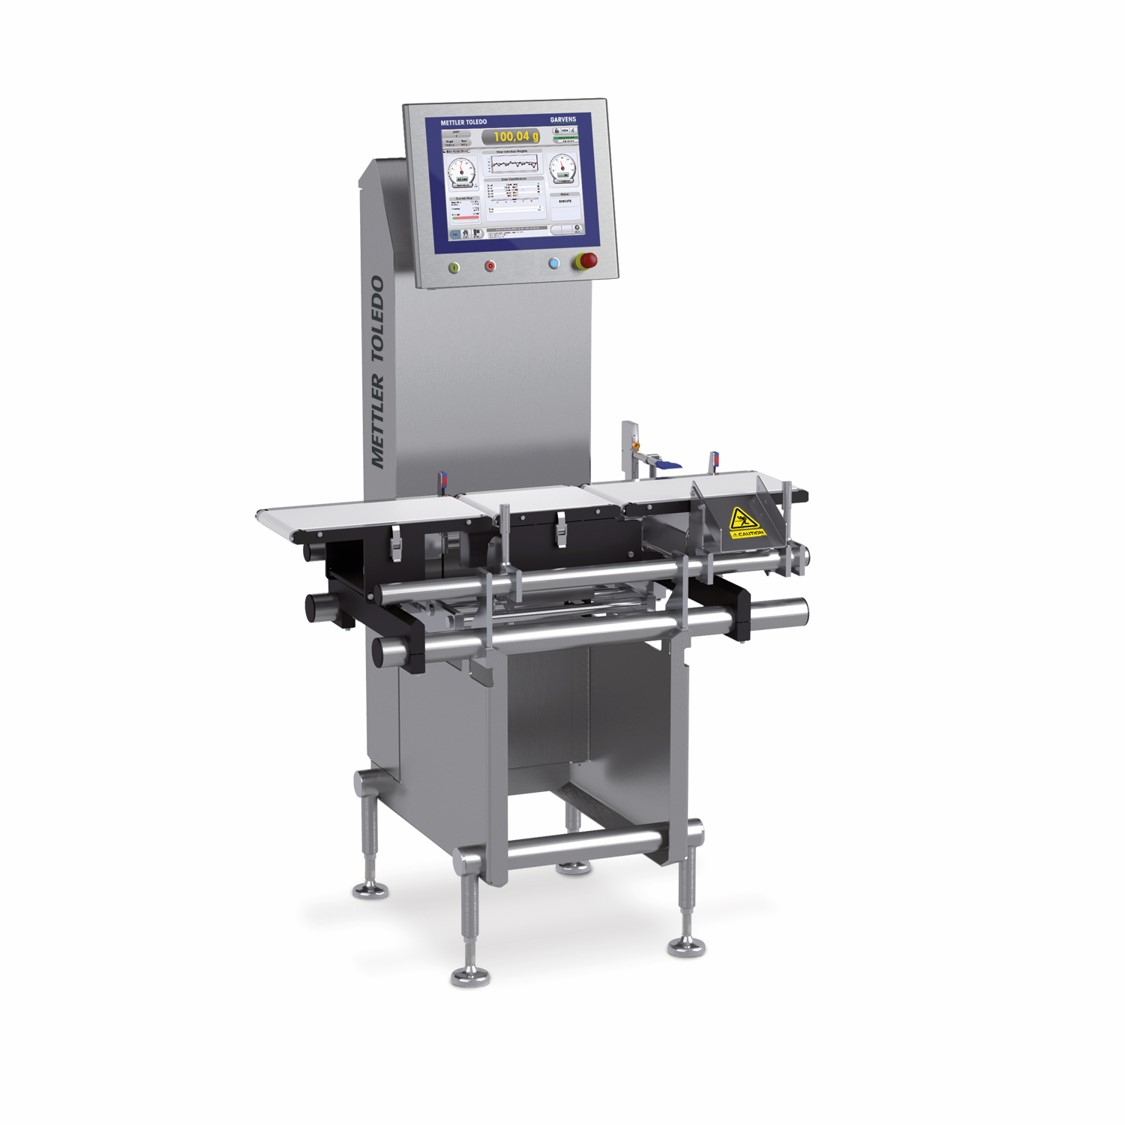 New checkweigher range to optimise flexibility